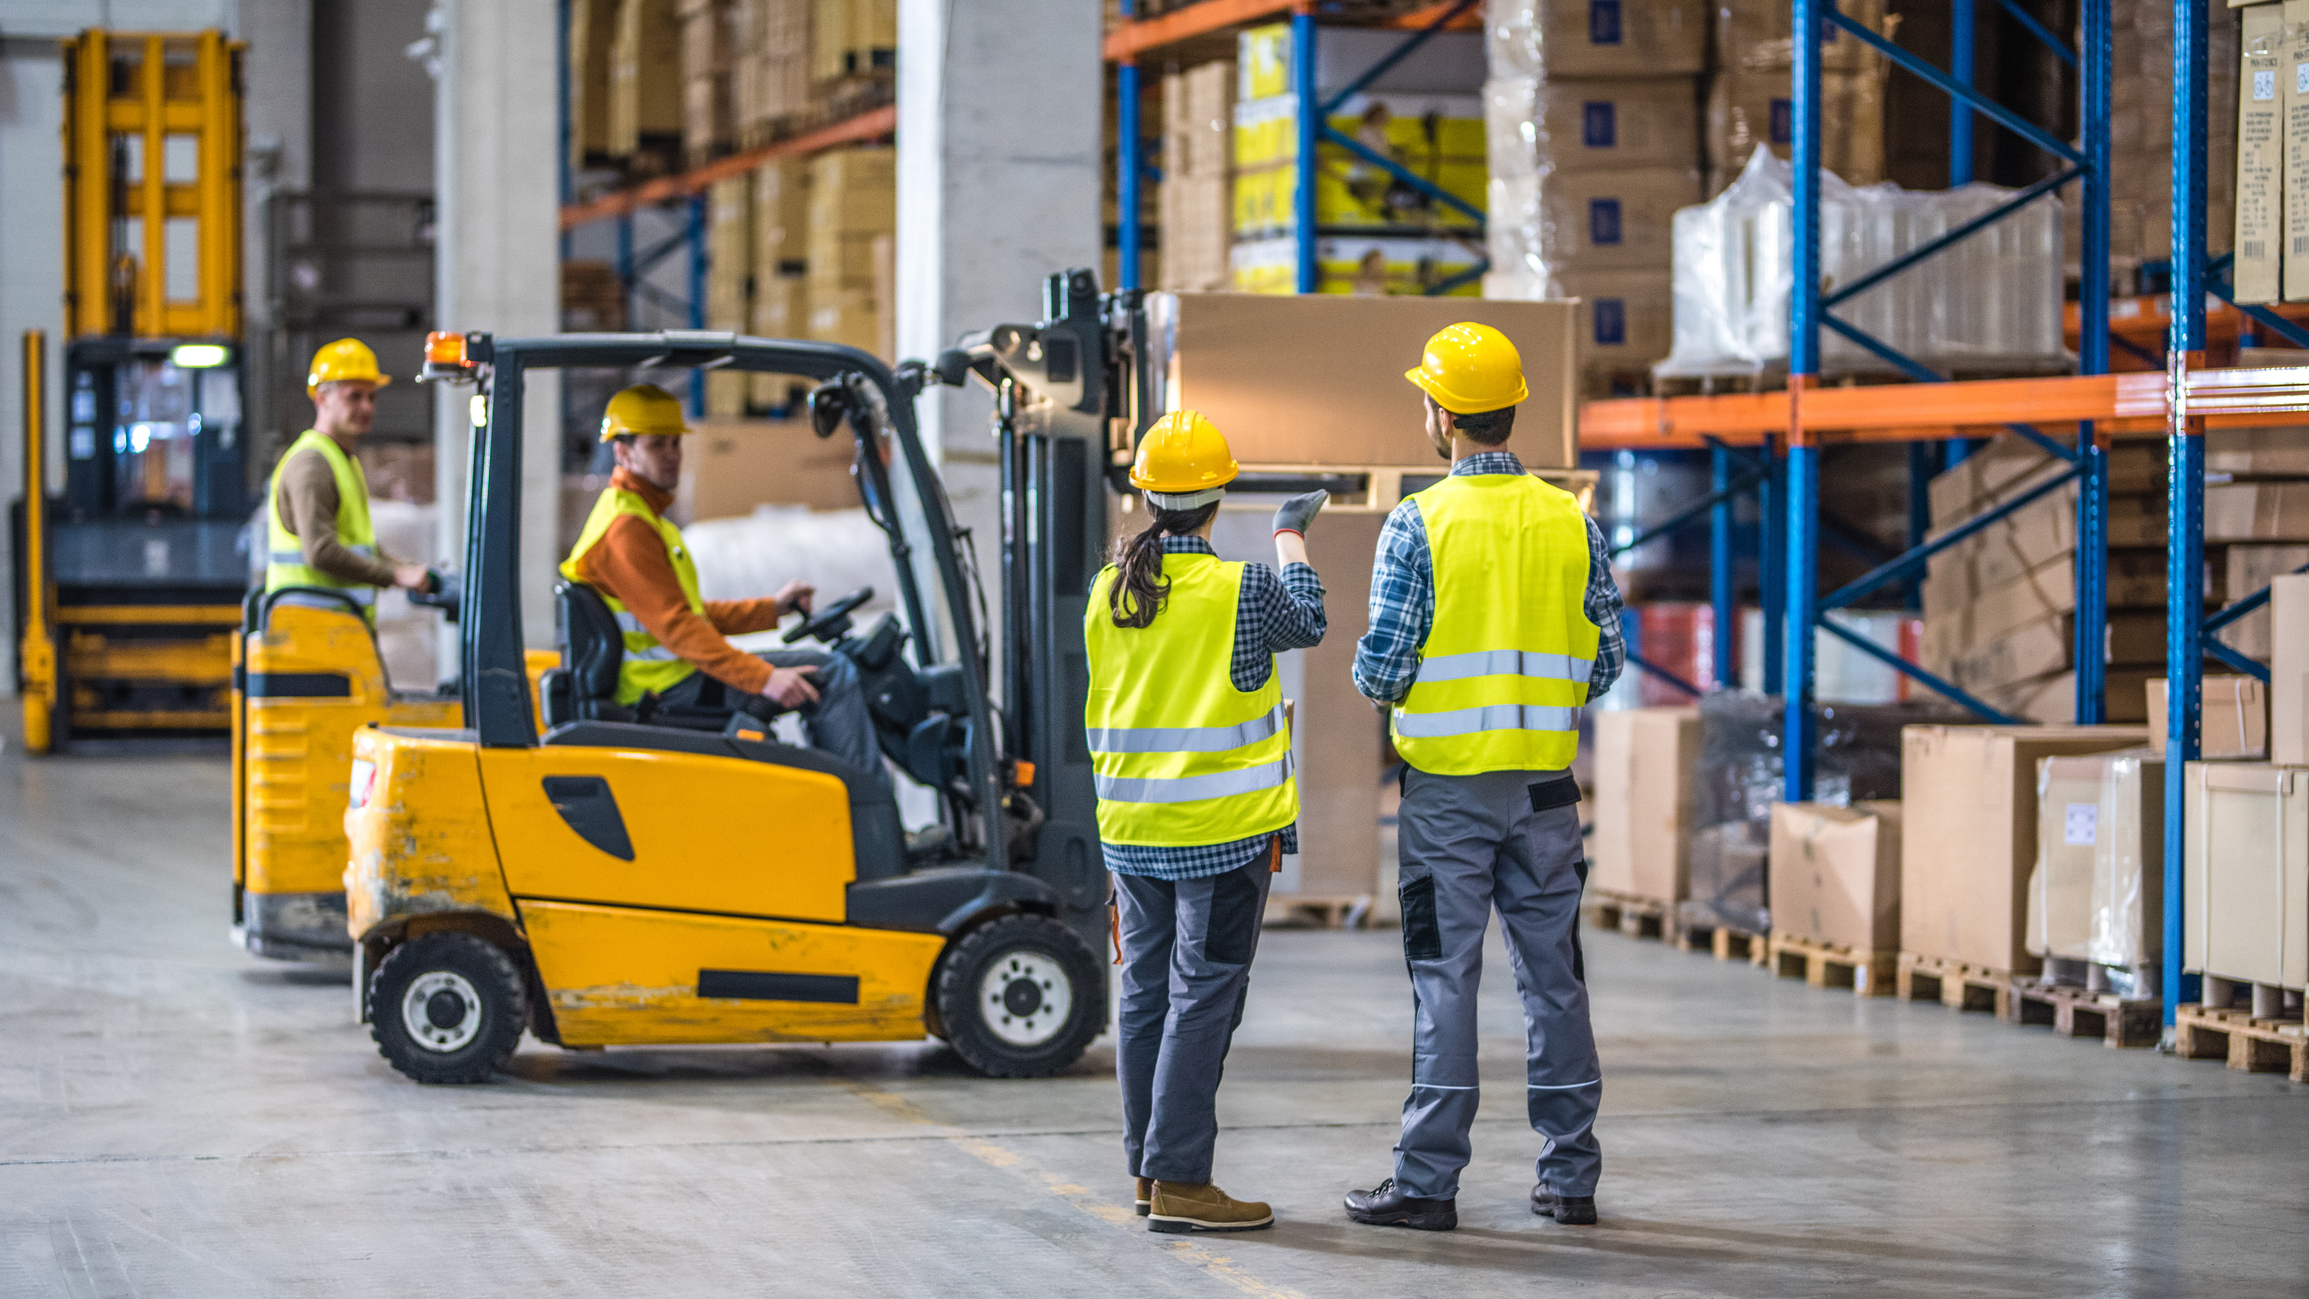 Should you repair or replace a forklift